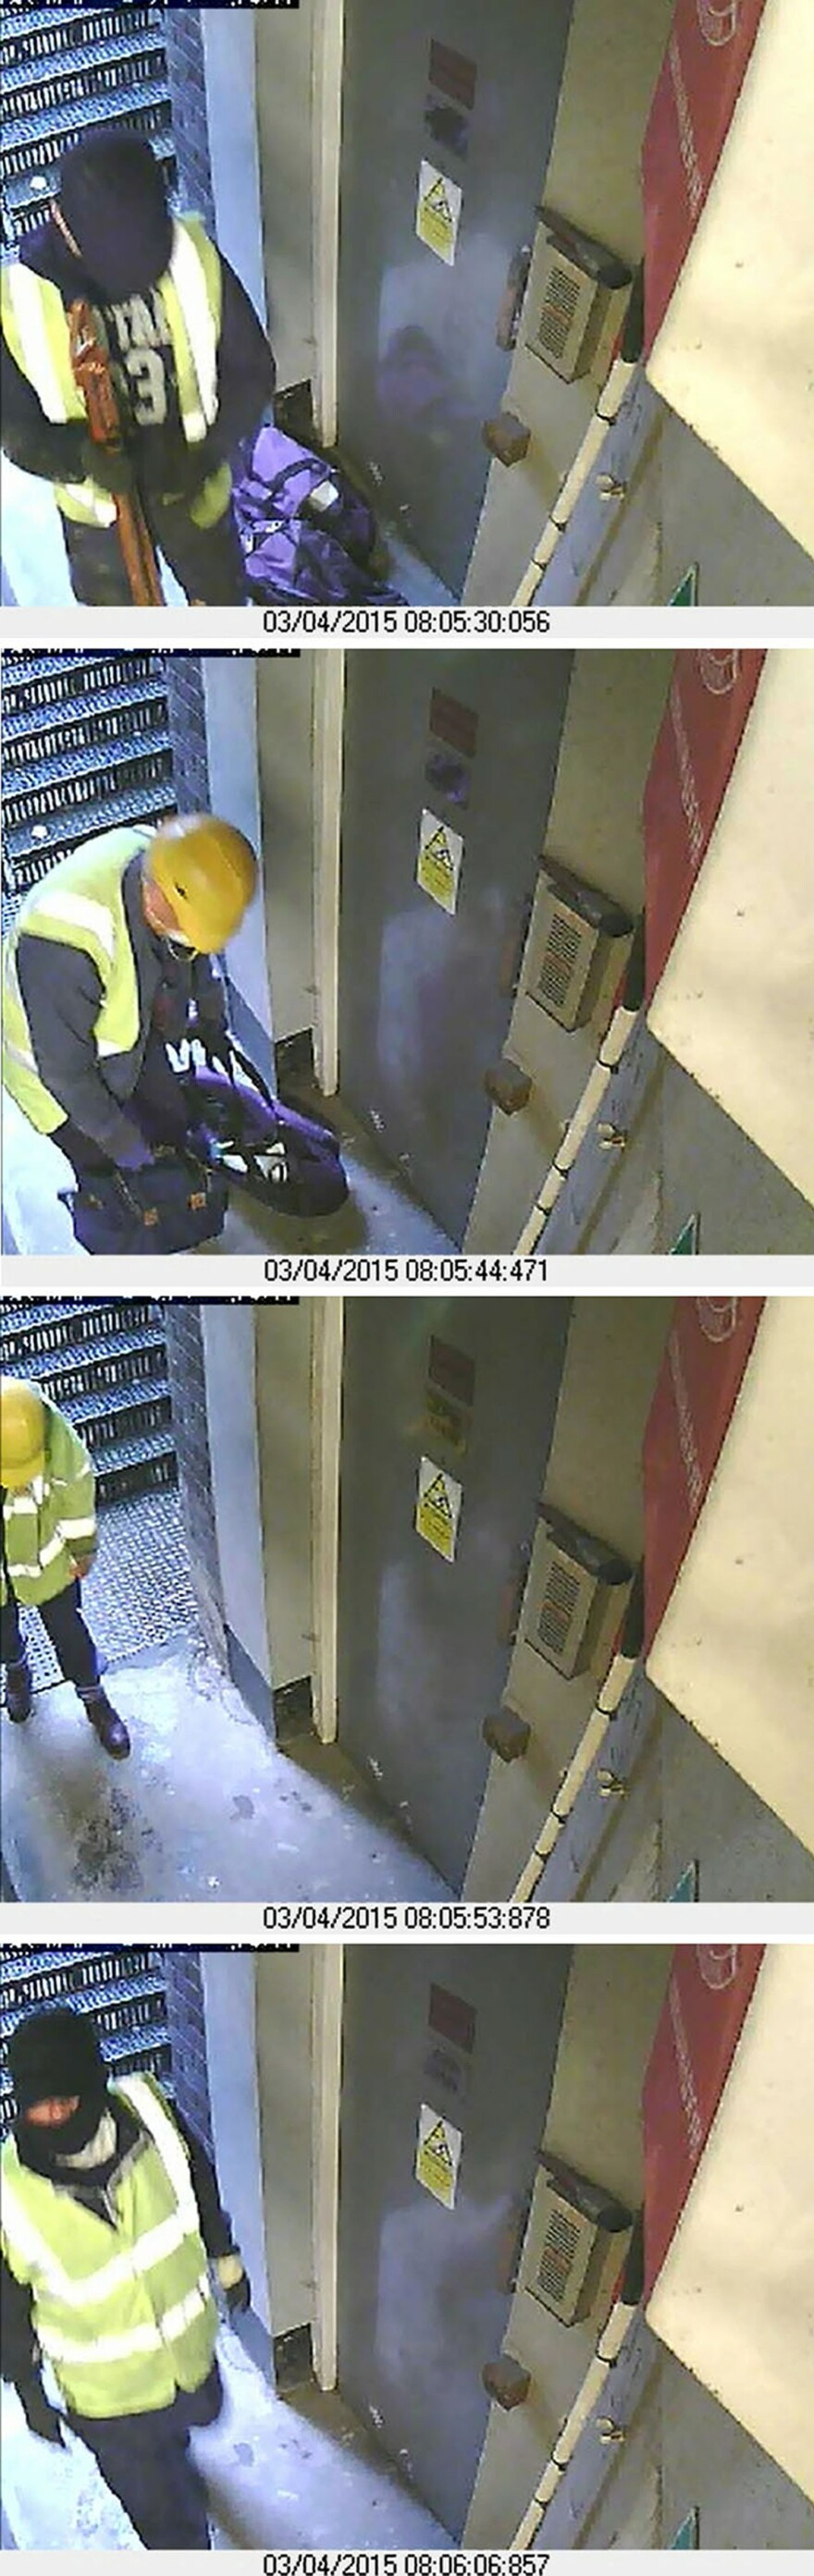 Surveillance camera images issued by the Metropolitan Police show thieves entering and leaving the scene of the burglary of the Hatton Garden Safe Deposit company. Police arrested seven suspects Tuesday.